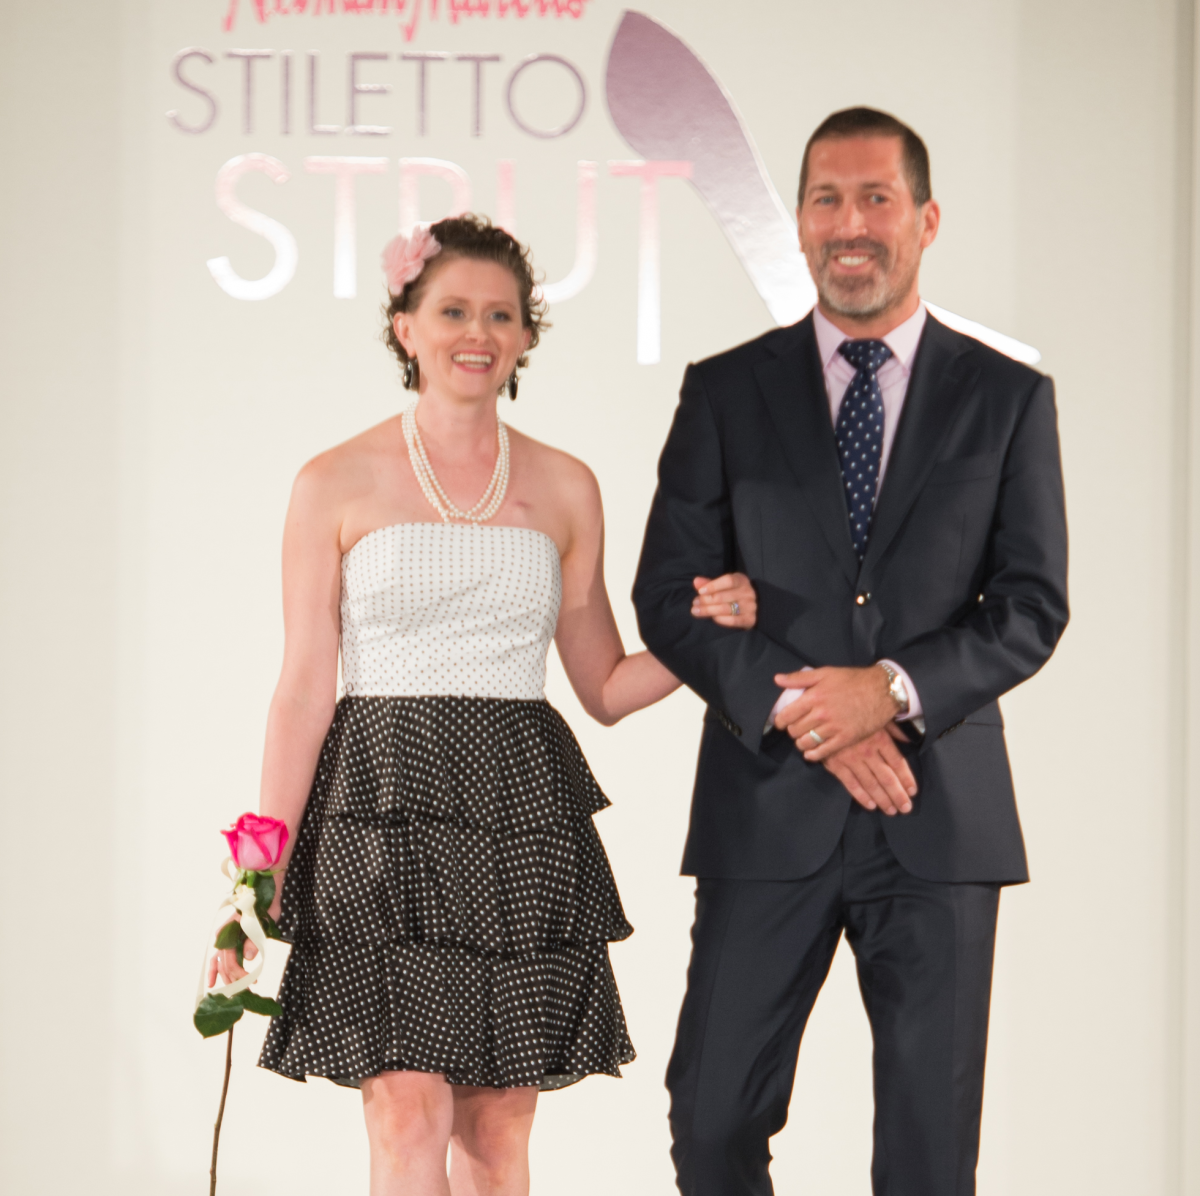 News, Shelby, Stiletto Strut, Sept. 2015 Heather Lozado and Hernan Vargas